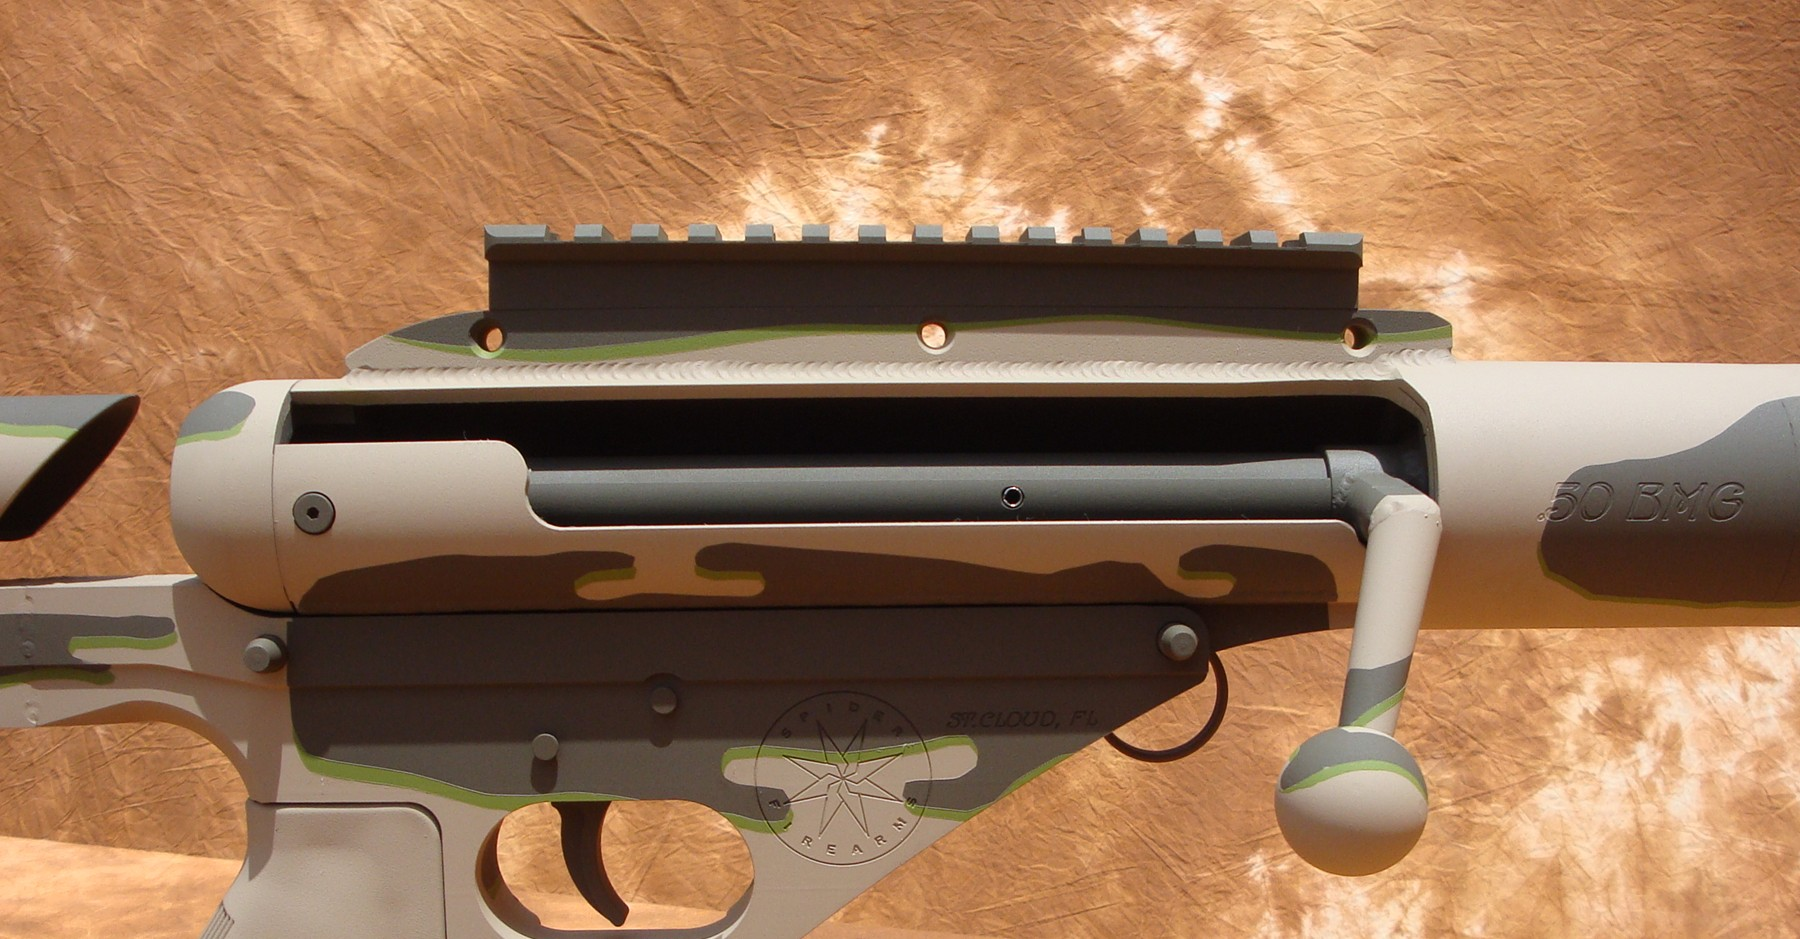 The Ferret50 50BMG rifle conversion for the AR-15